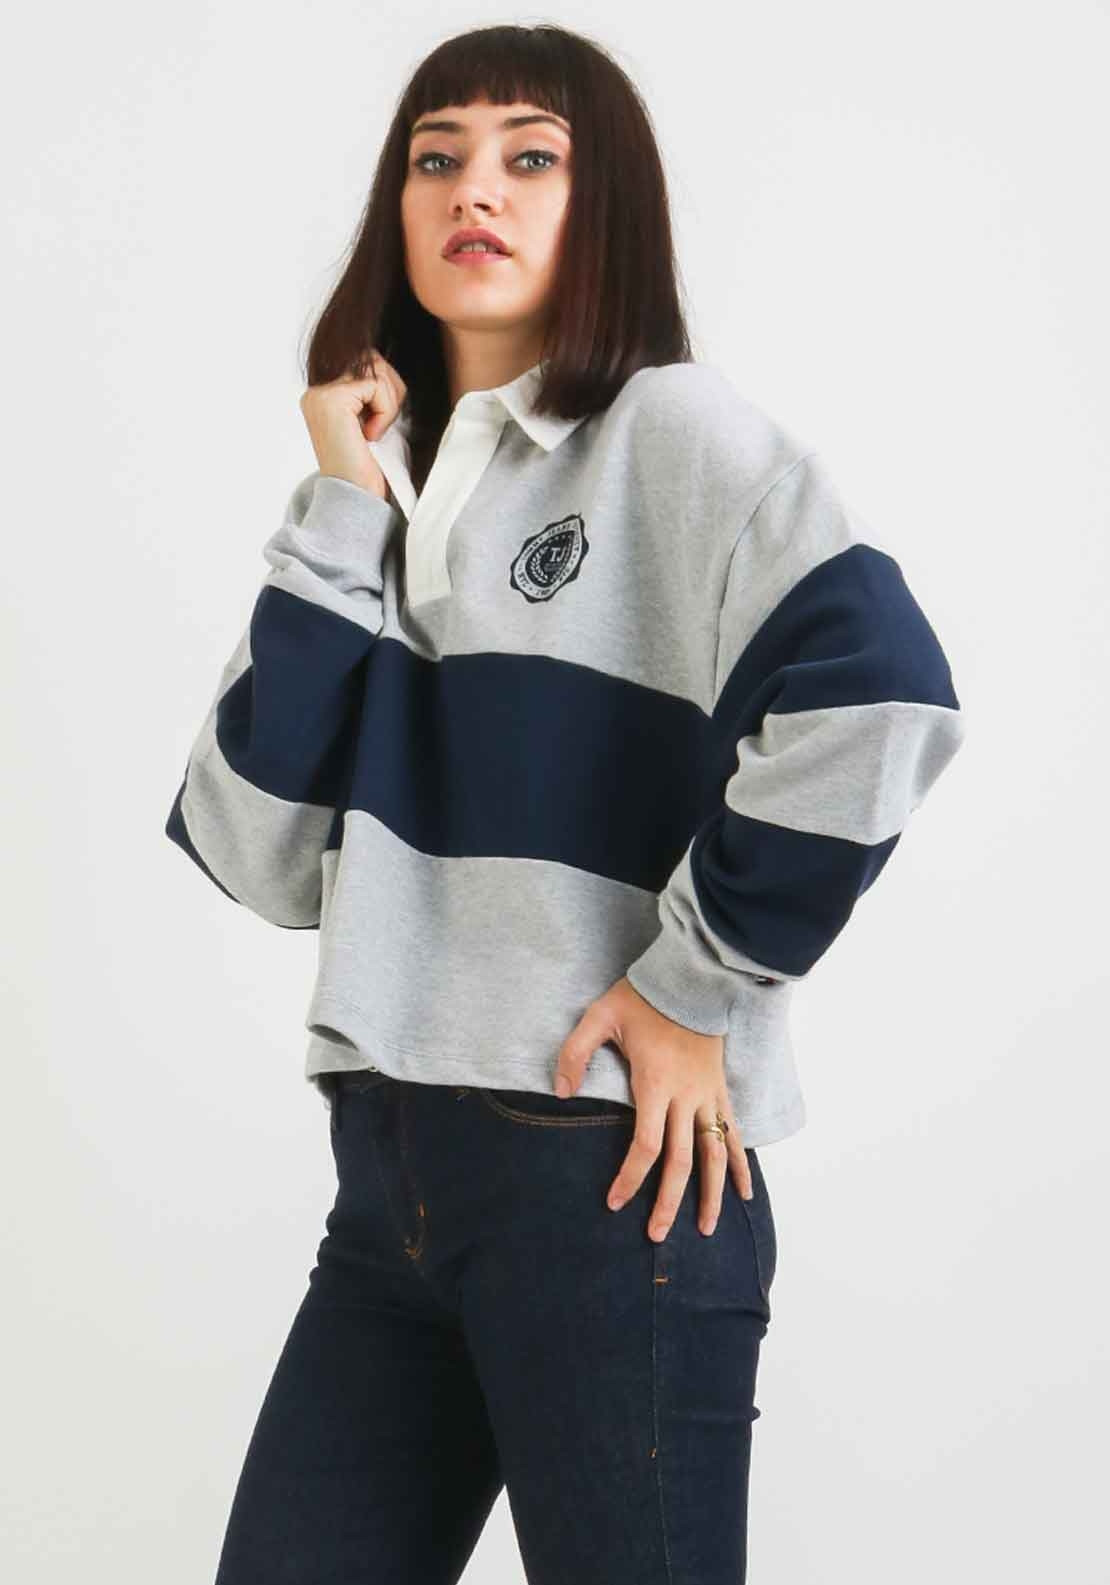 42f1d3489c7 Tommy Jeans Womens Rugby Sweatshirt, Grey. Be the first to review this  product